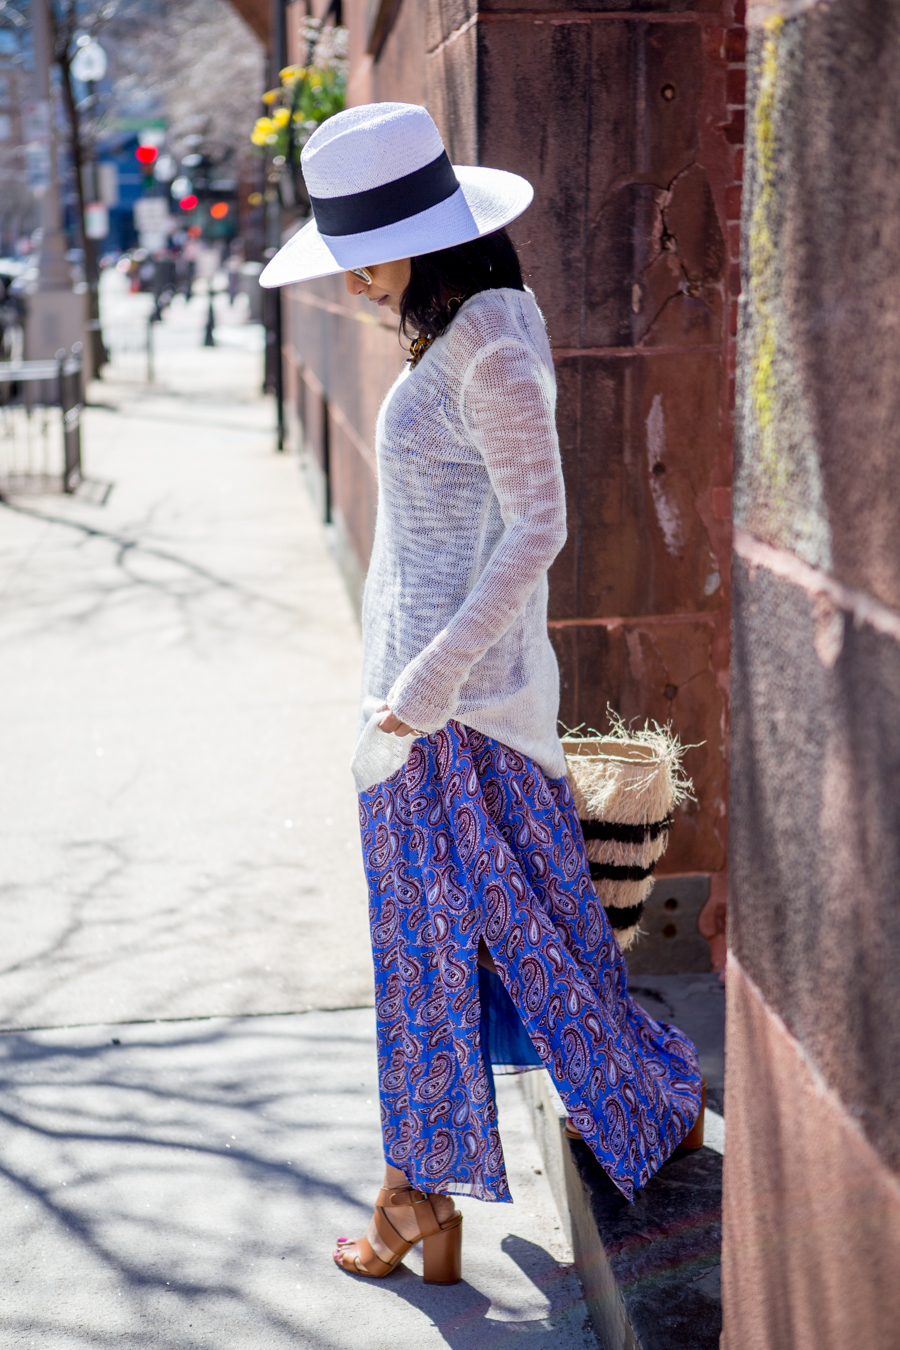 spring fashion, spring style, spring lookbook, banana republic, maxi dresses, paisley, feminine style, vacation dresses, resort style, spring vacation, easter style, petite blogger, petite fashion, color, kayu, nordstrom